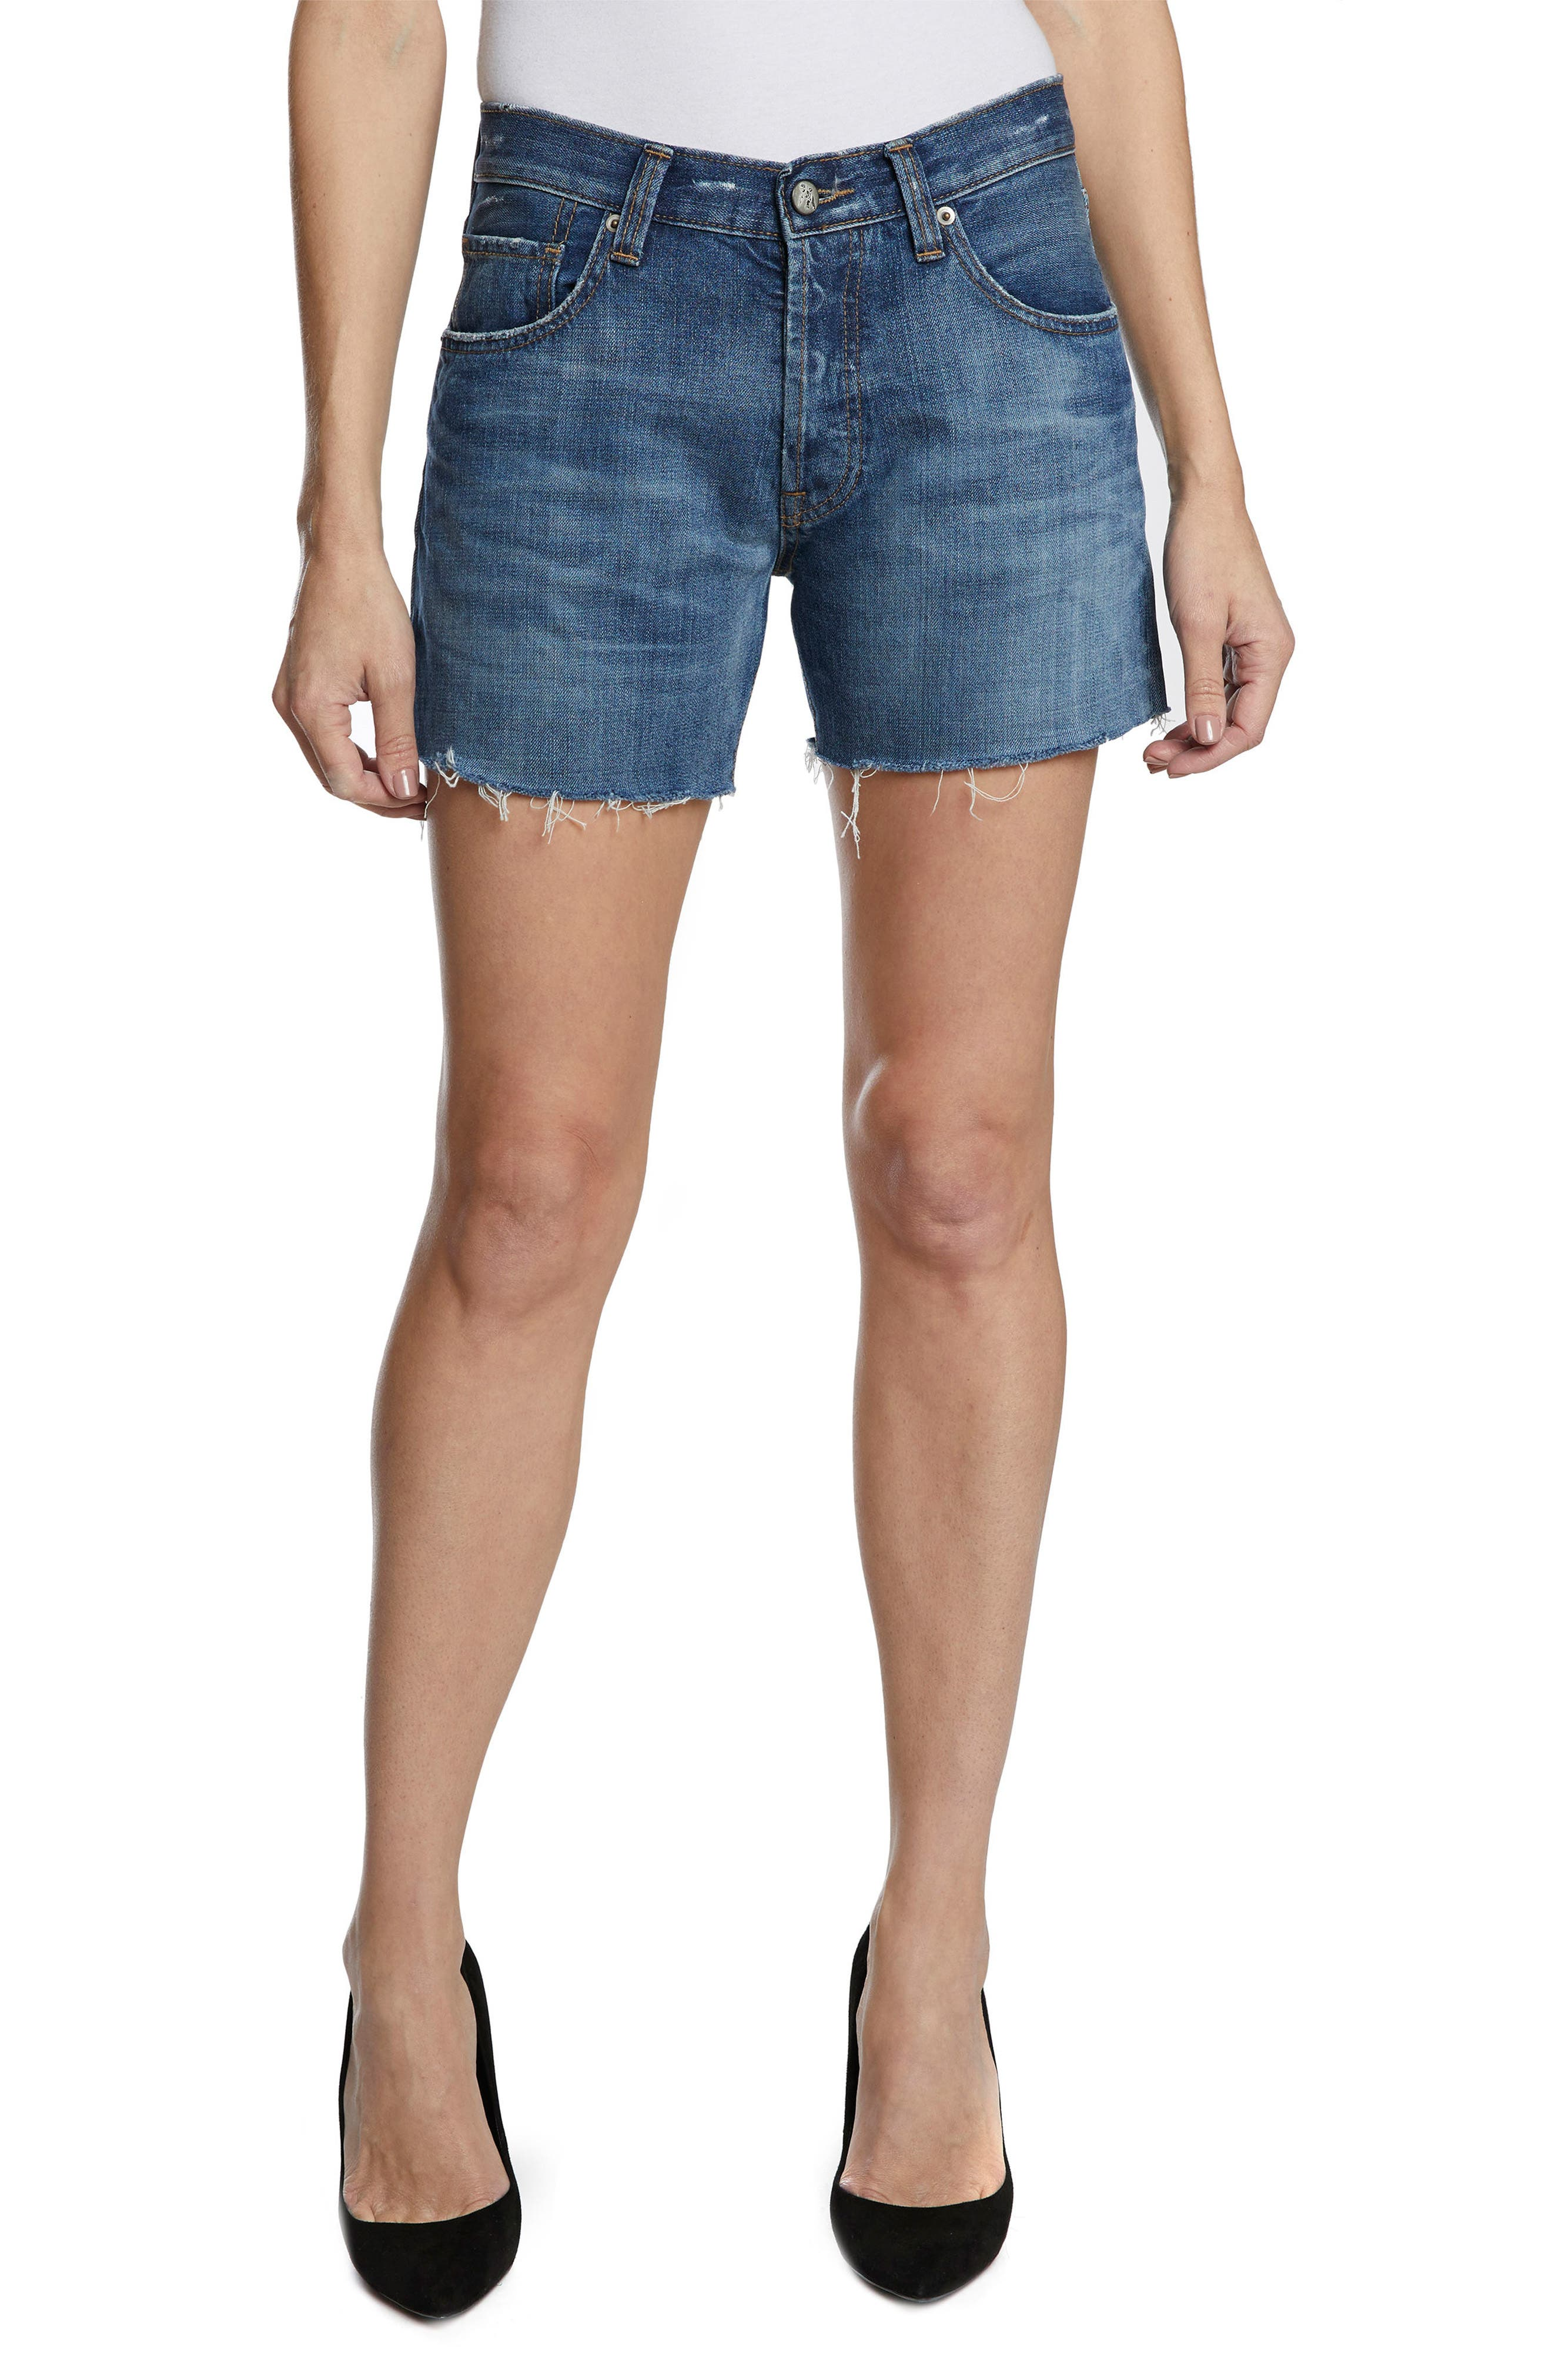 El Camino Cutoff Denim Boyfriend Shorts,                         Main,                         color, 438